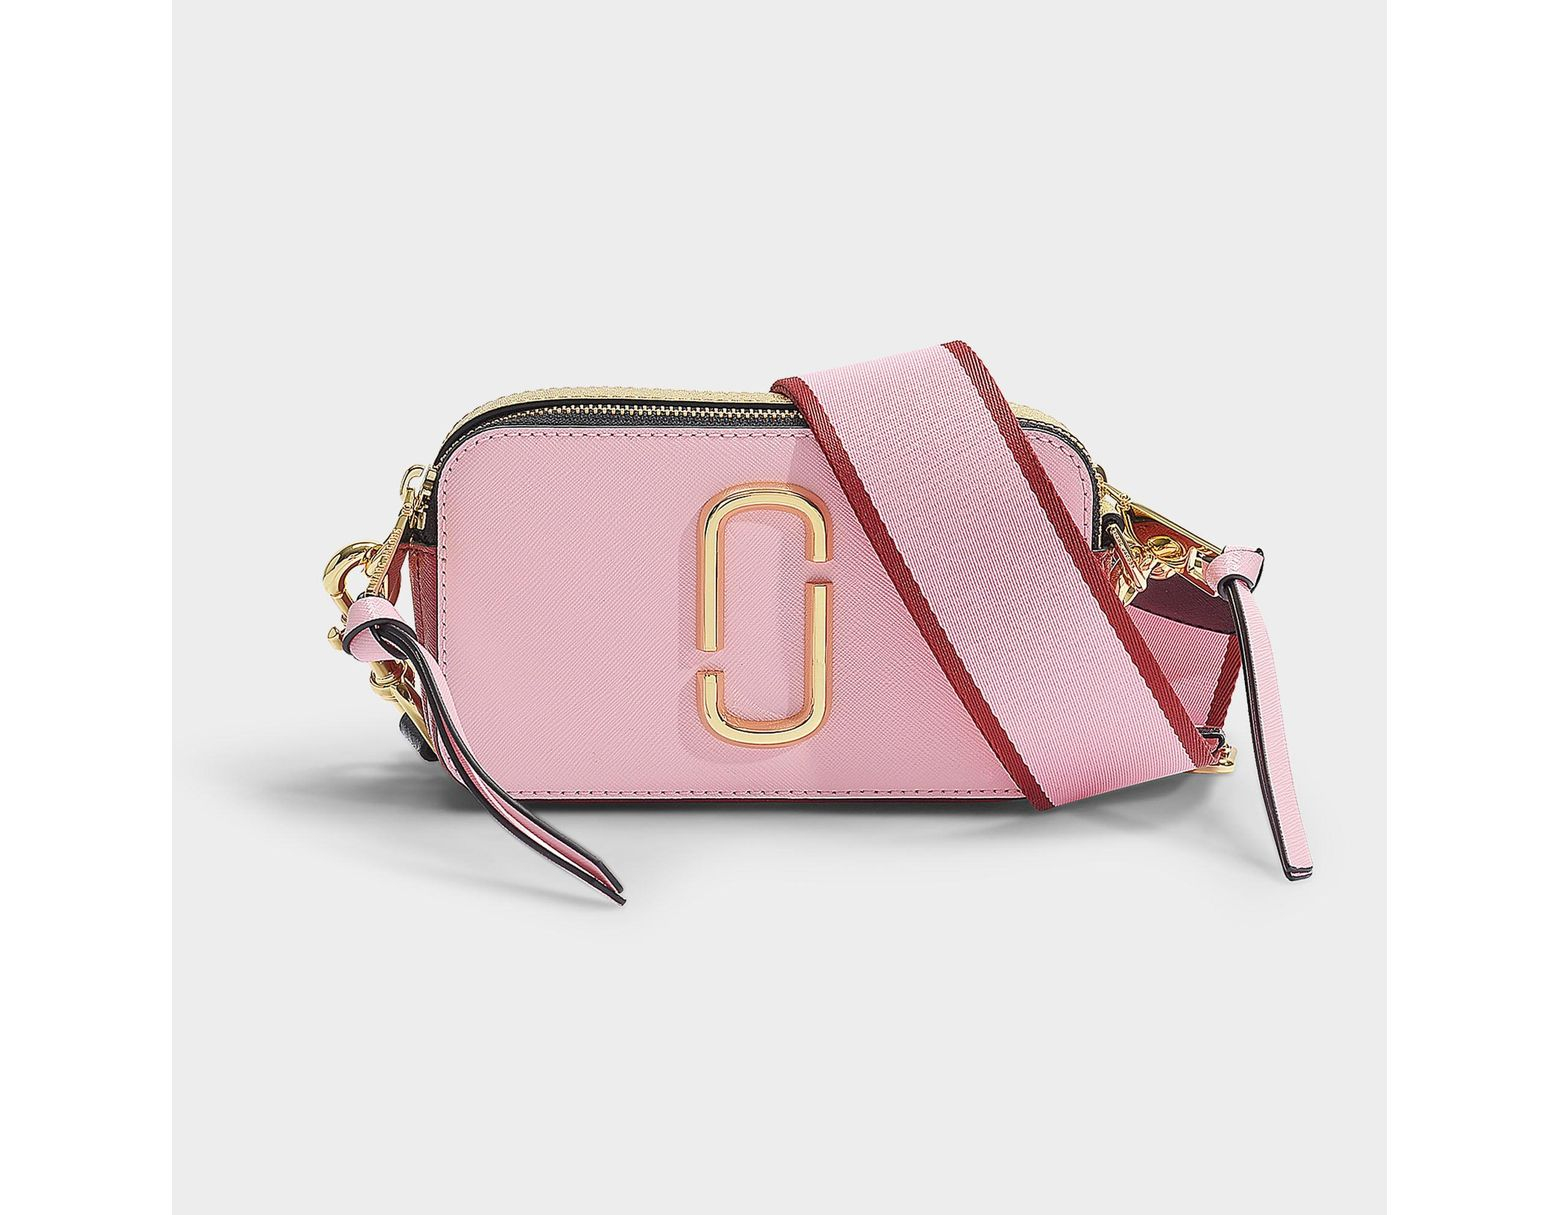 d02f3666bc Marc Jacobs Snapshot Bag In Baby Pink And Red Leather With Polyurethane  Coating in Pink - Lyst